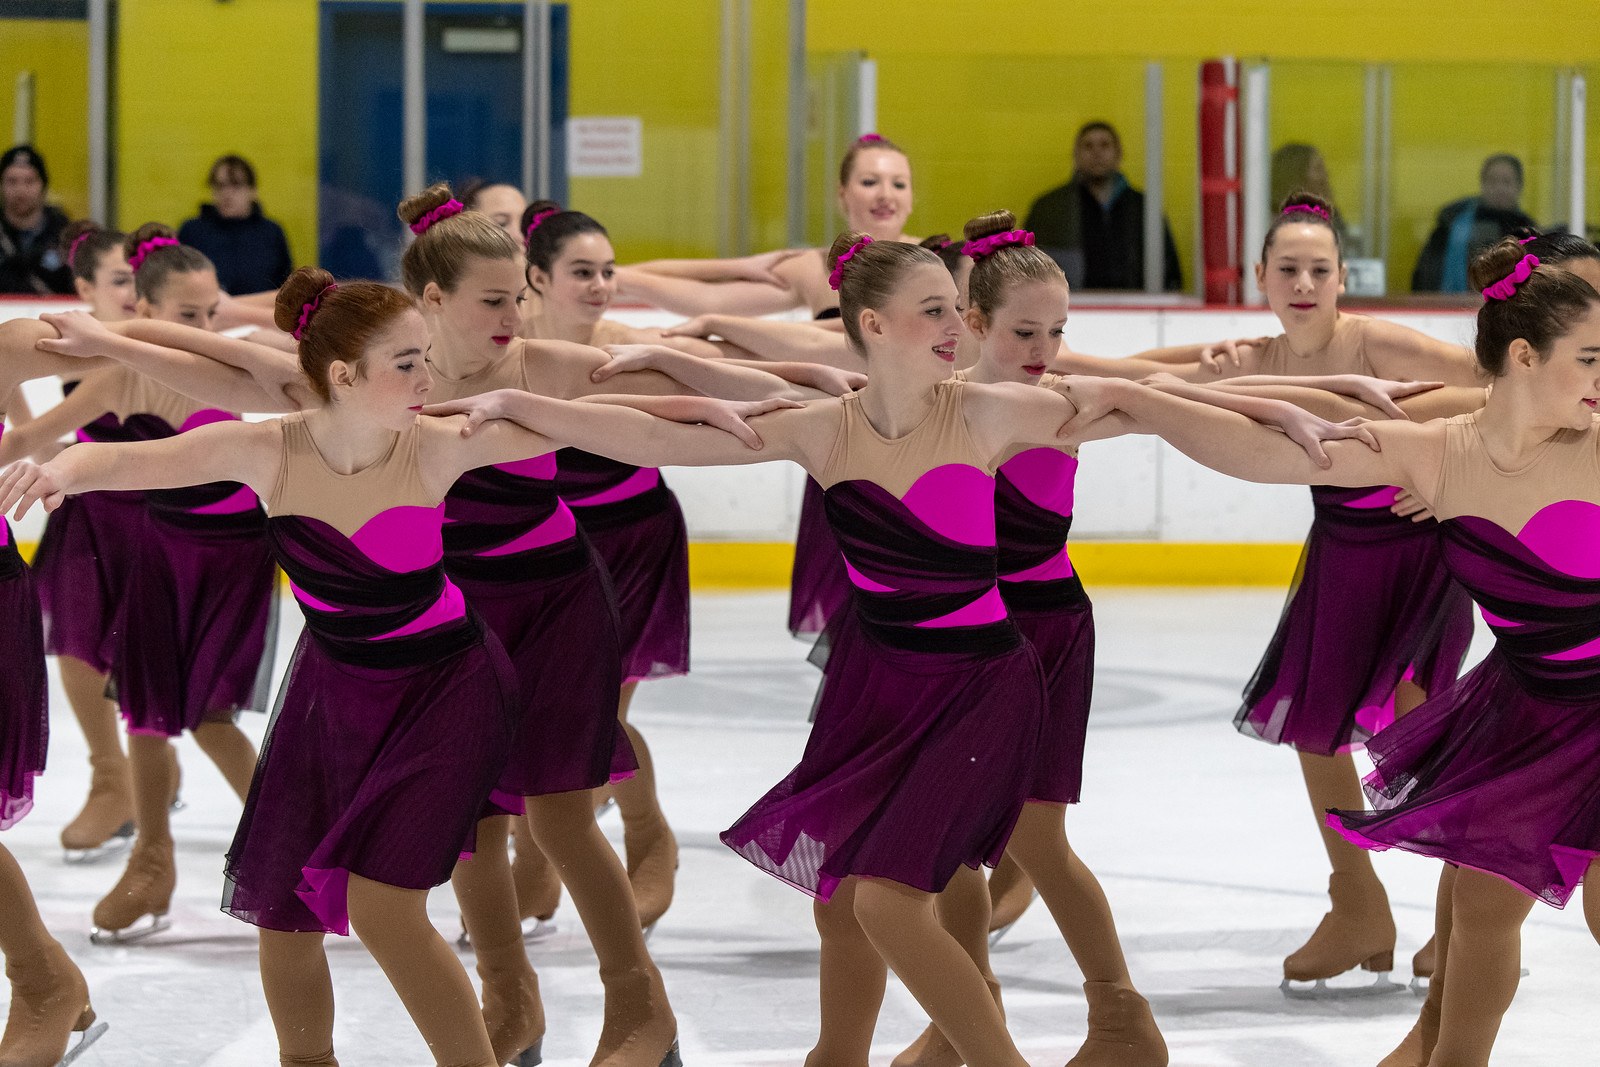 The 2018-19 Dix Hills Ice Chips Pre-Juvenile Line won bronze at the 2018 Terry Conners Synchro Open and placed seventh at the 2019 Colonial Classic.